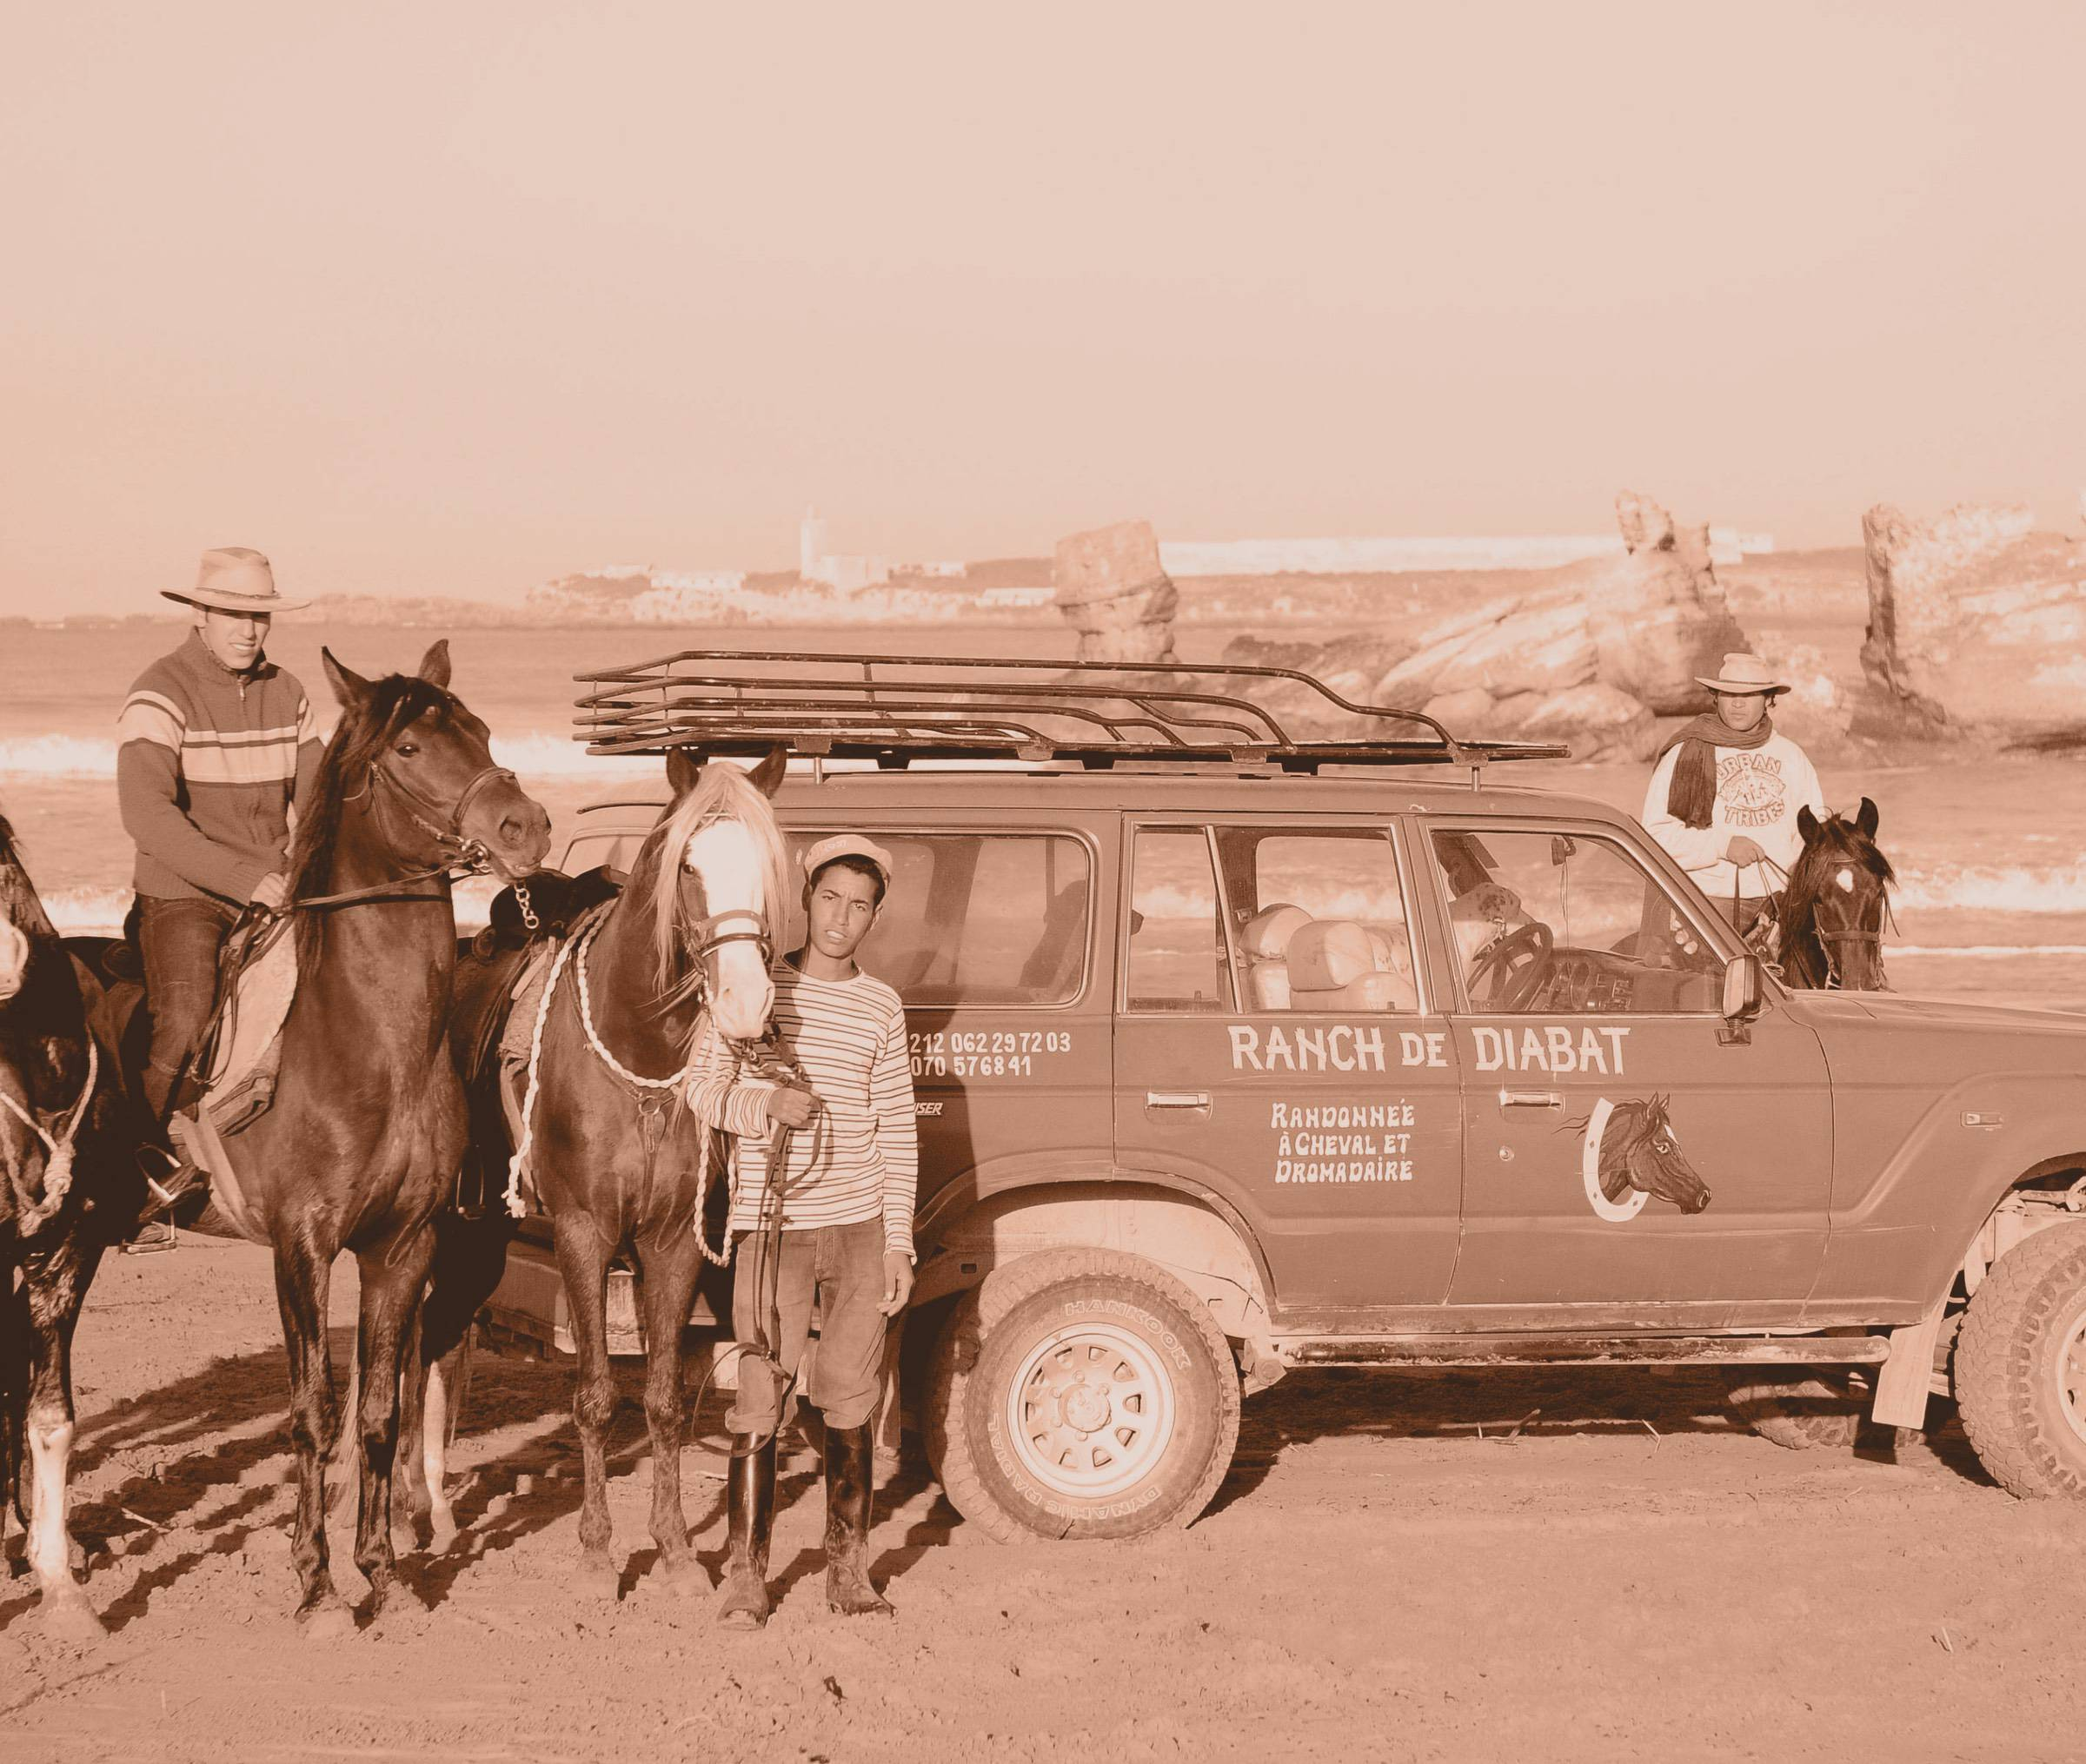 About the Ranch of Diabat